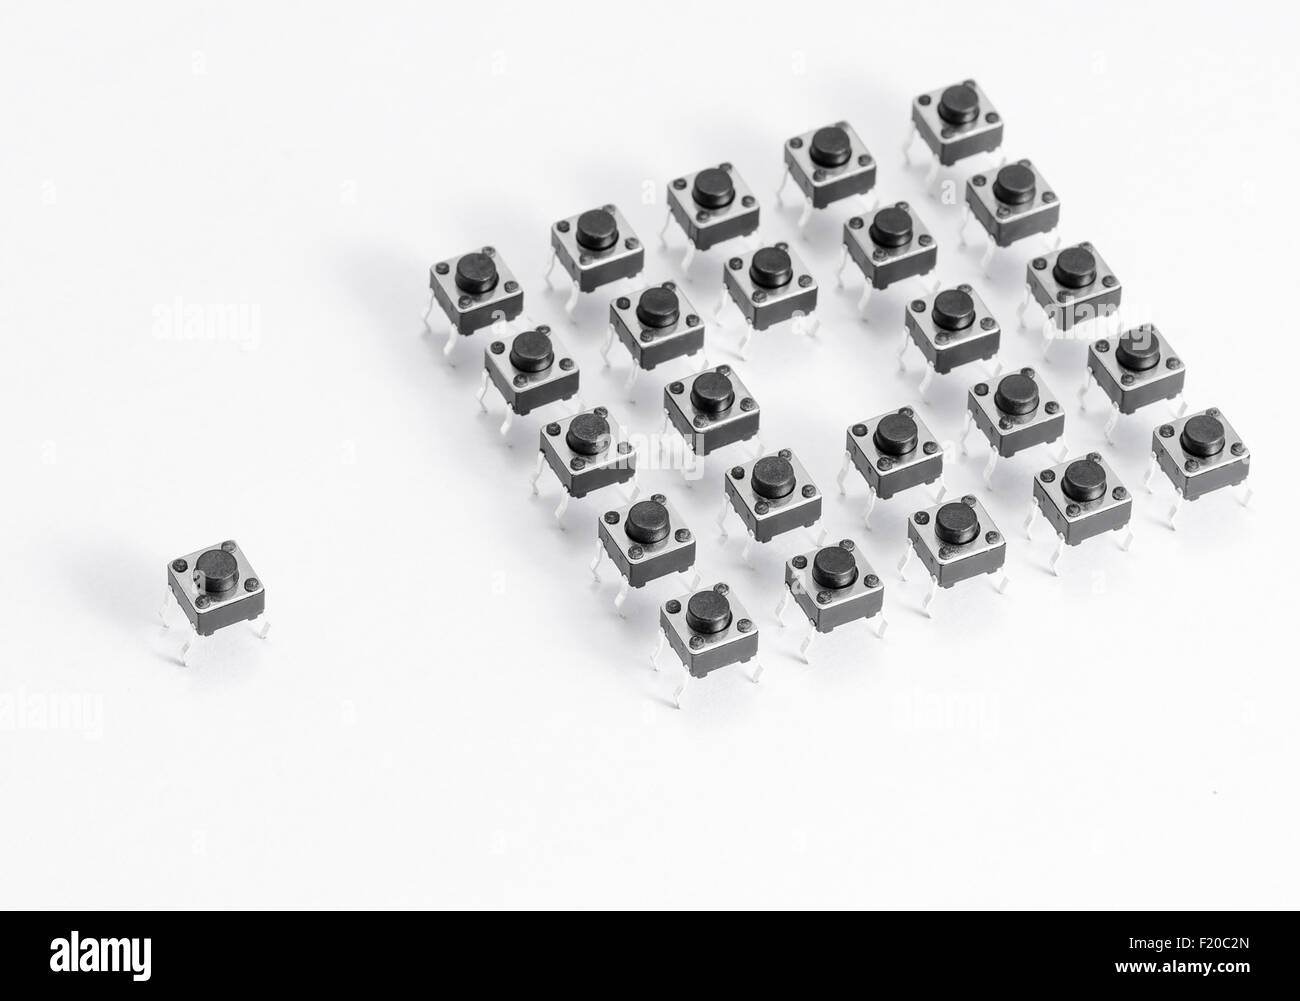 Microswitch isolated on white background - Stock Image